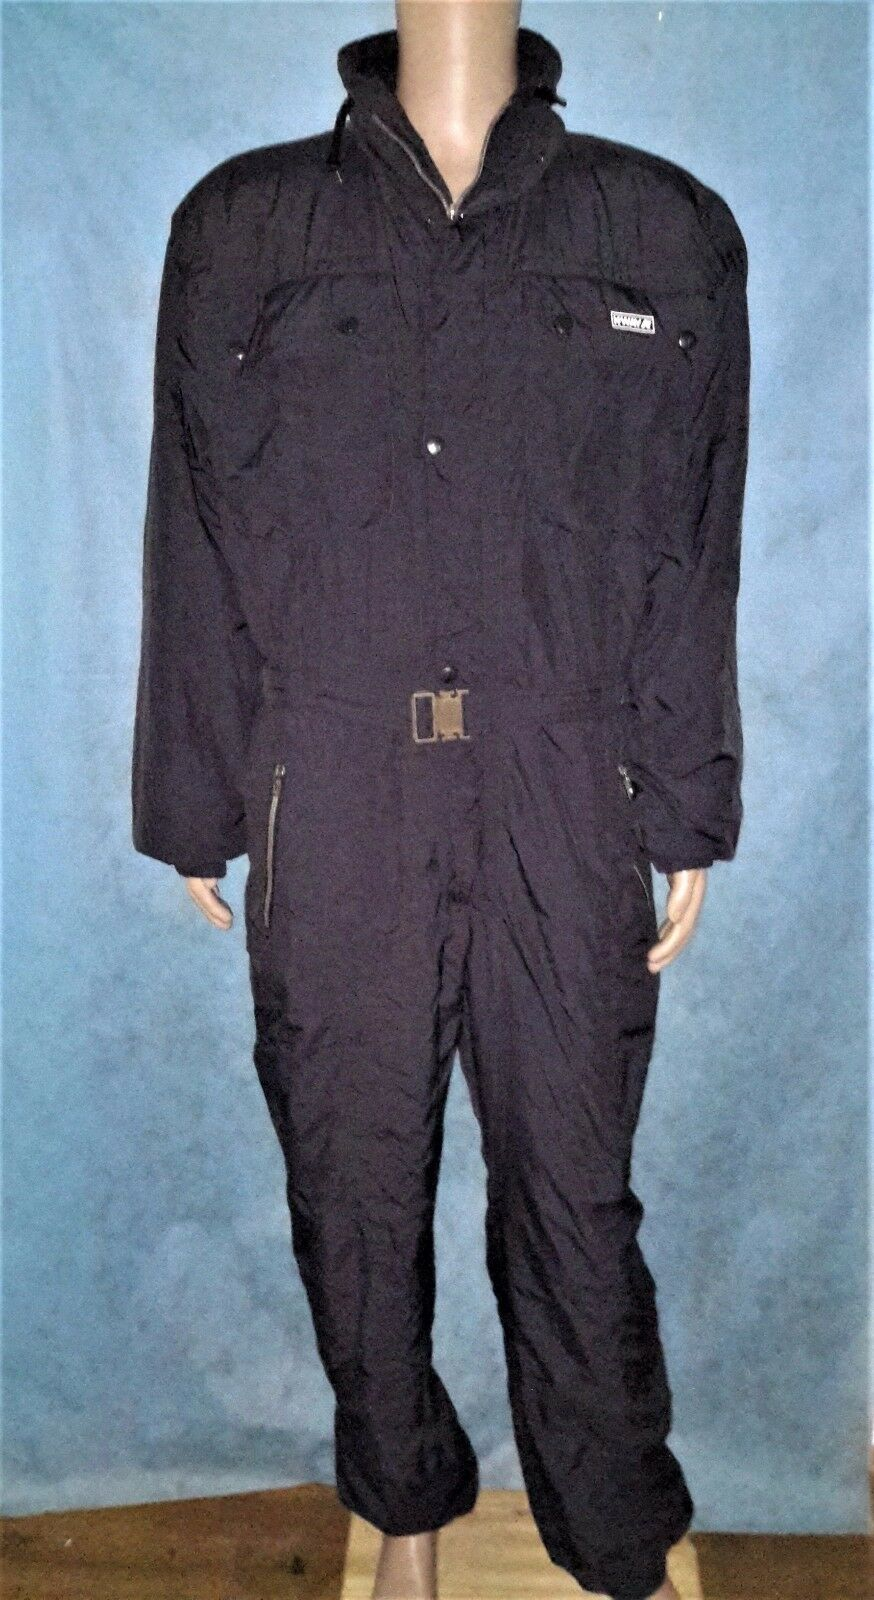 Suit Ski K-way  Vintage Alberville 1992 Size 54  order now lowest prices